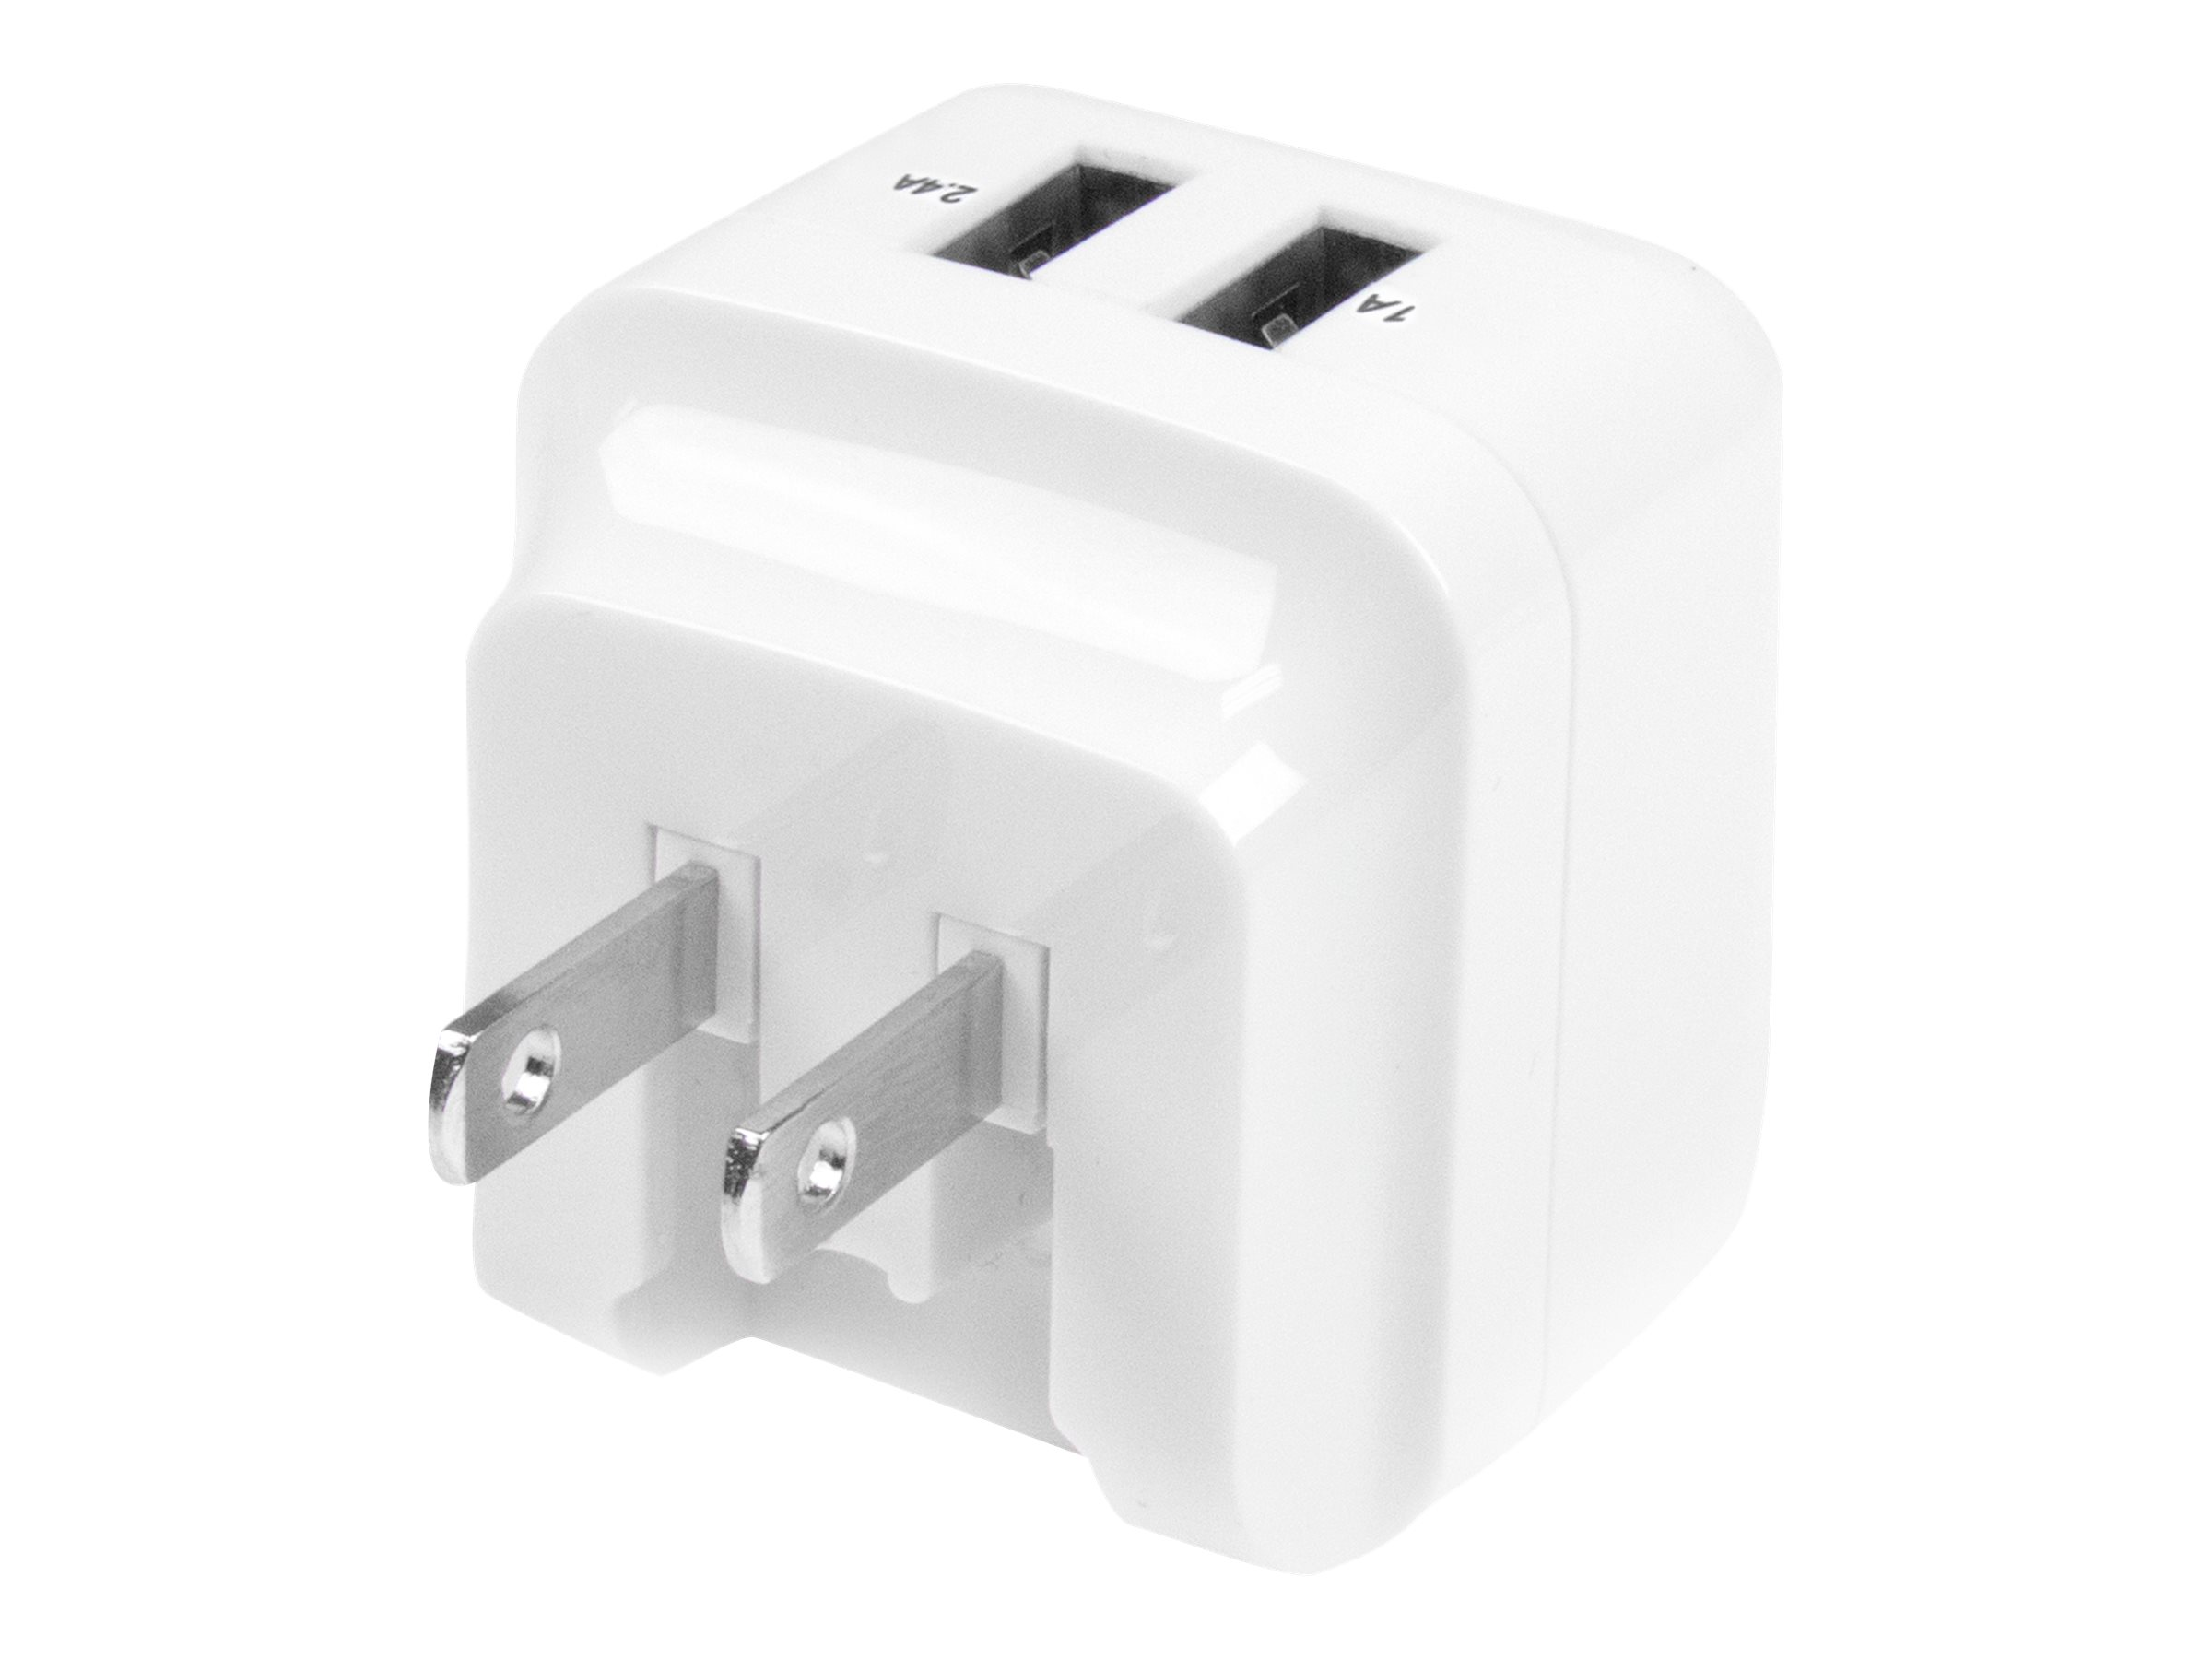 StarTech.com Dual Port USB Wall Charger 17W/3.4A - Travel Charger 110V/220V power adapter - USB - 17 Watt